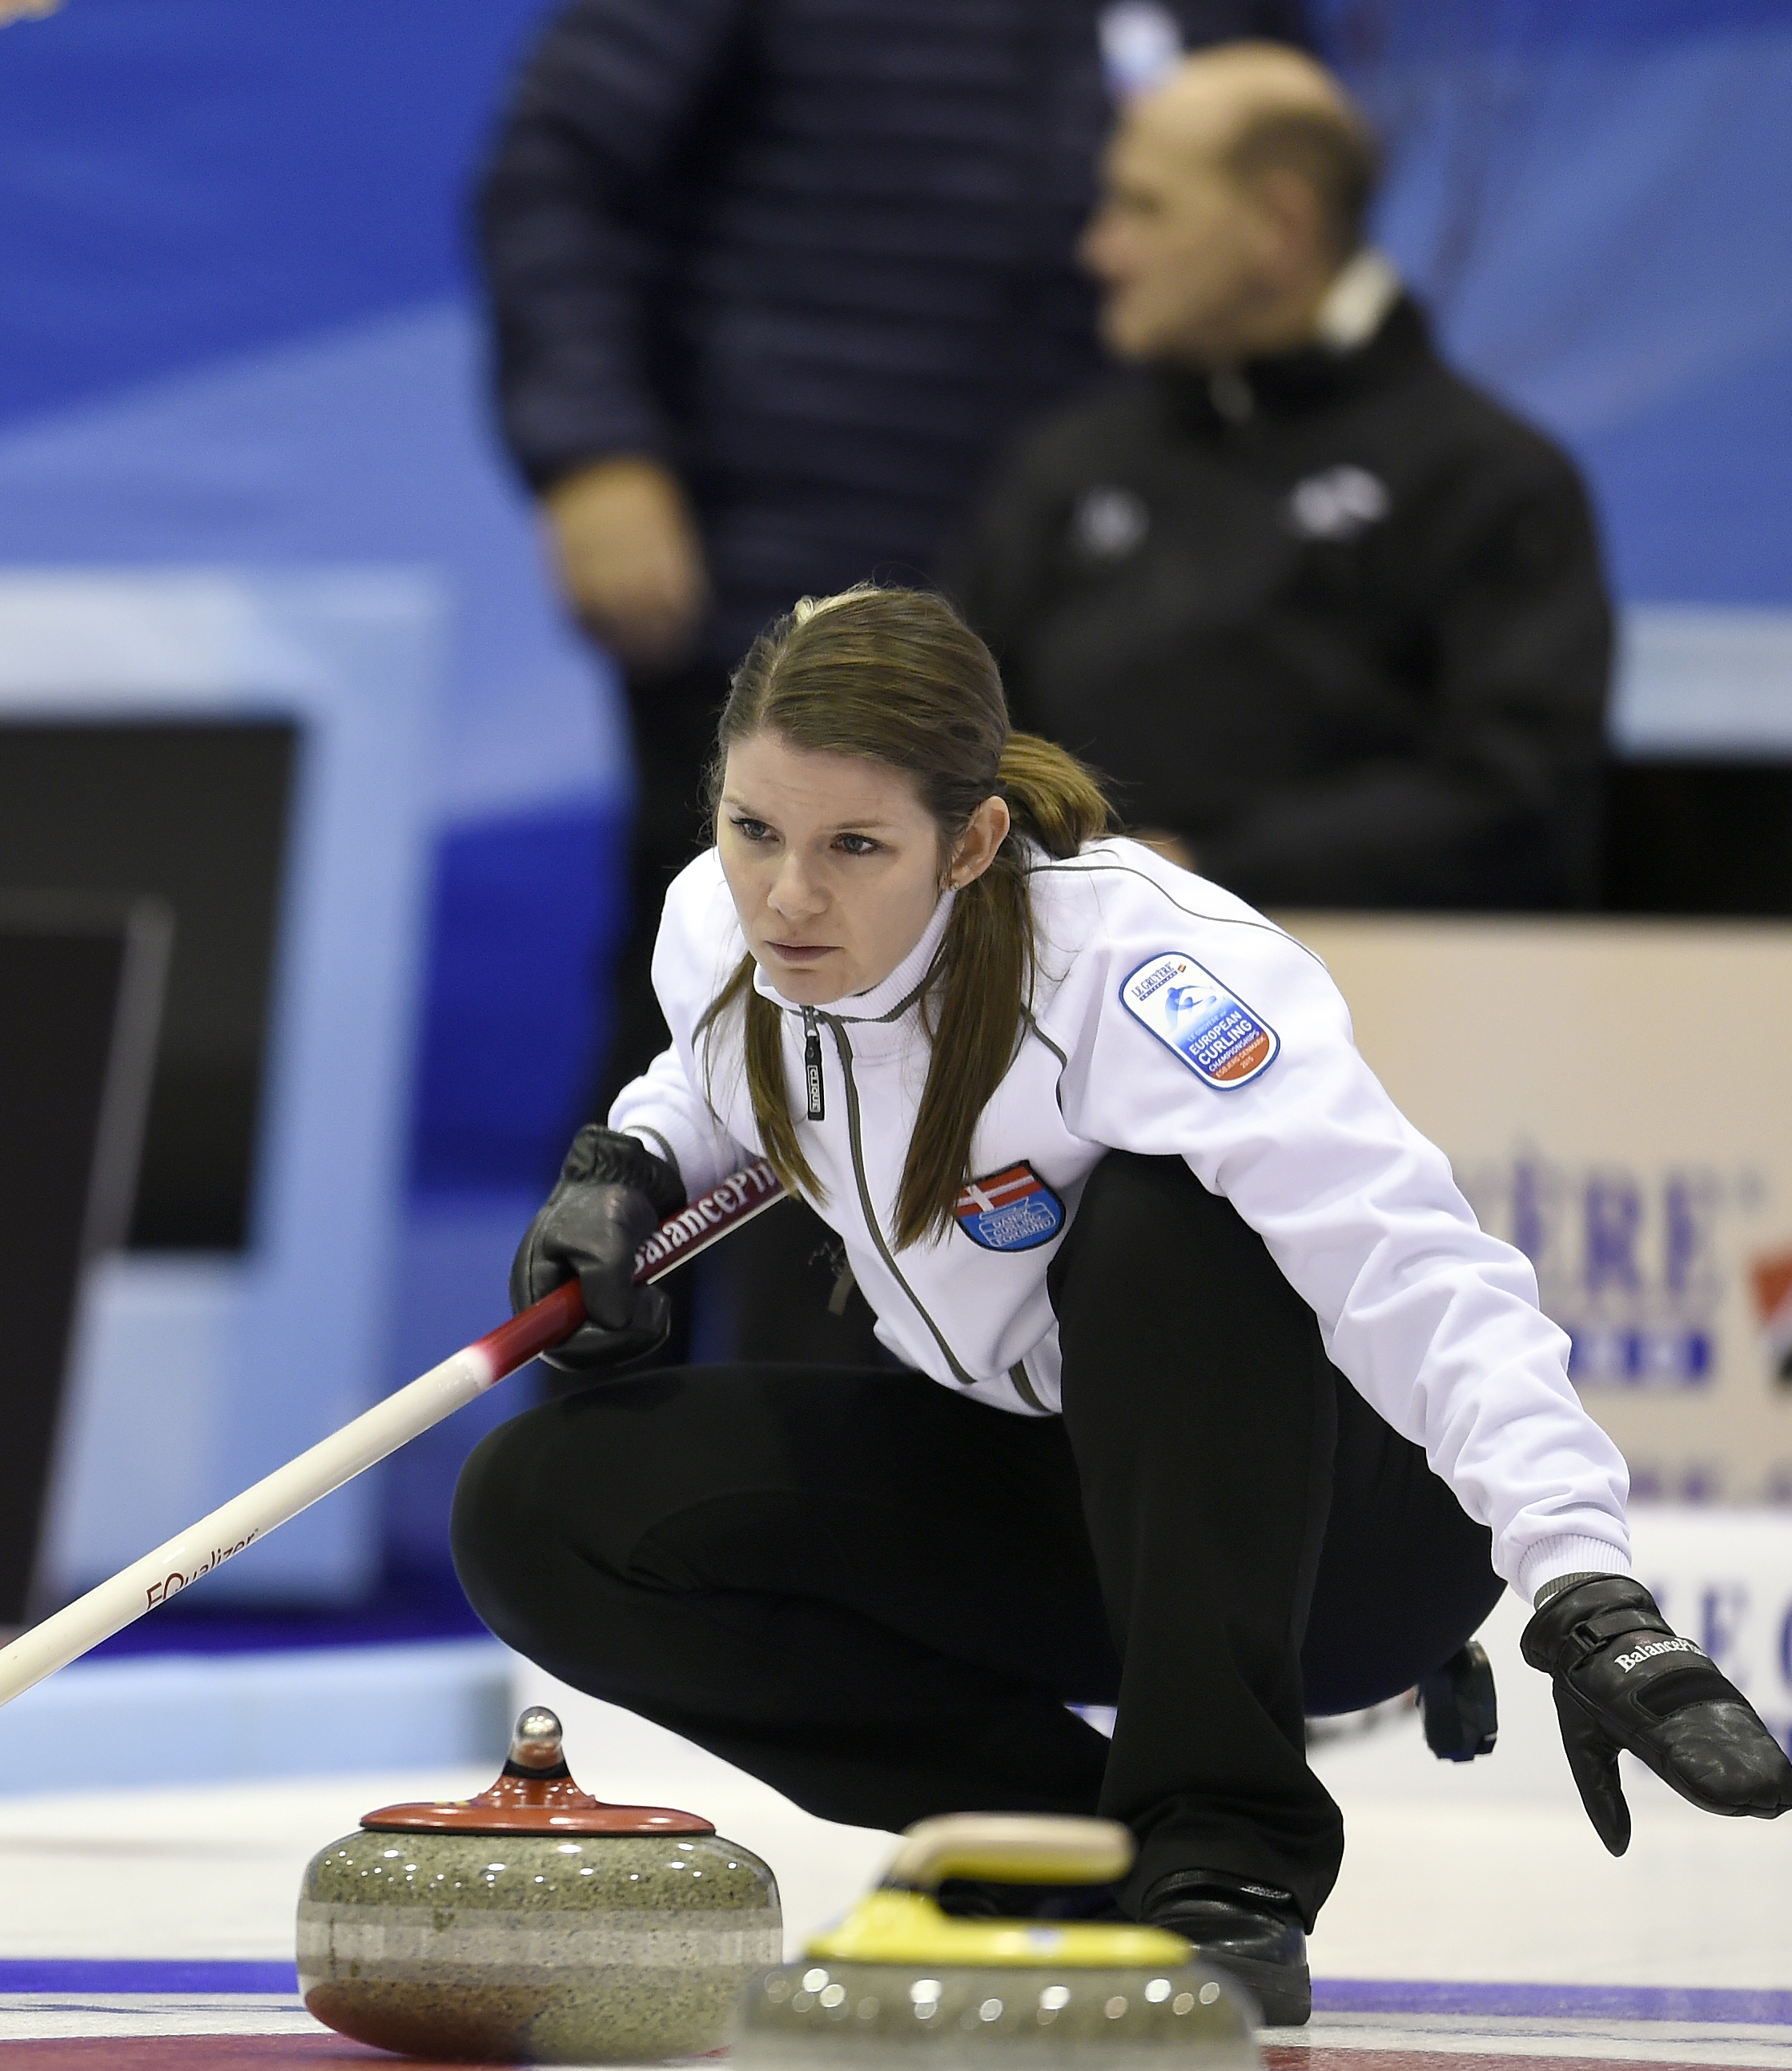 European Curling Championships 2015